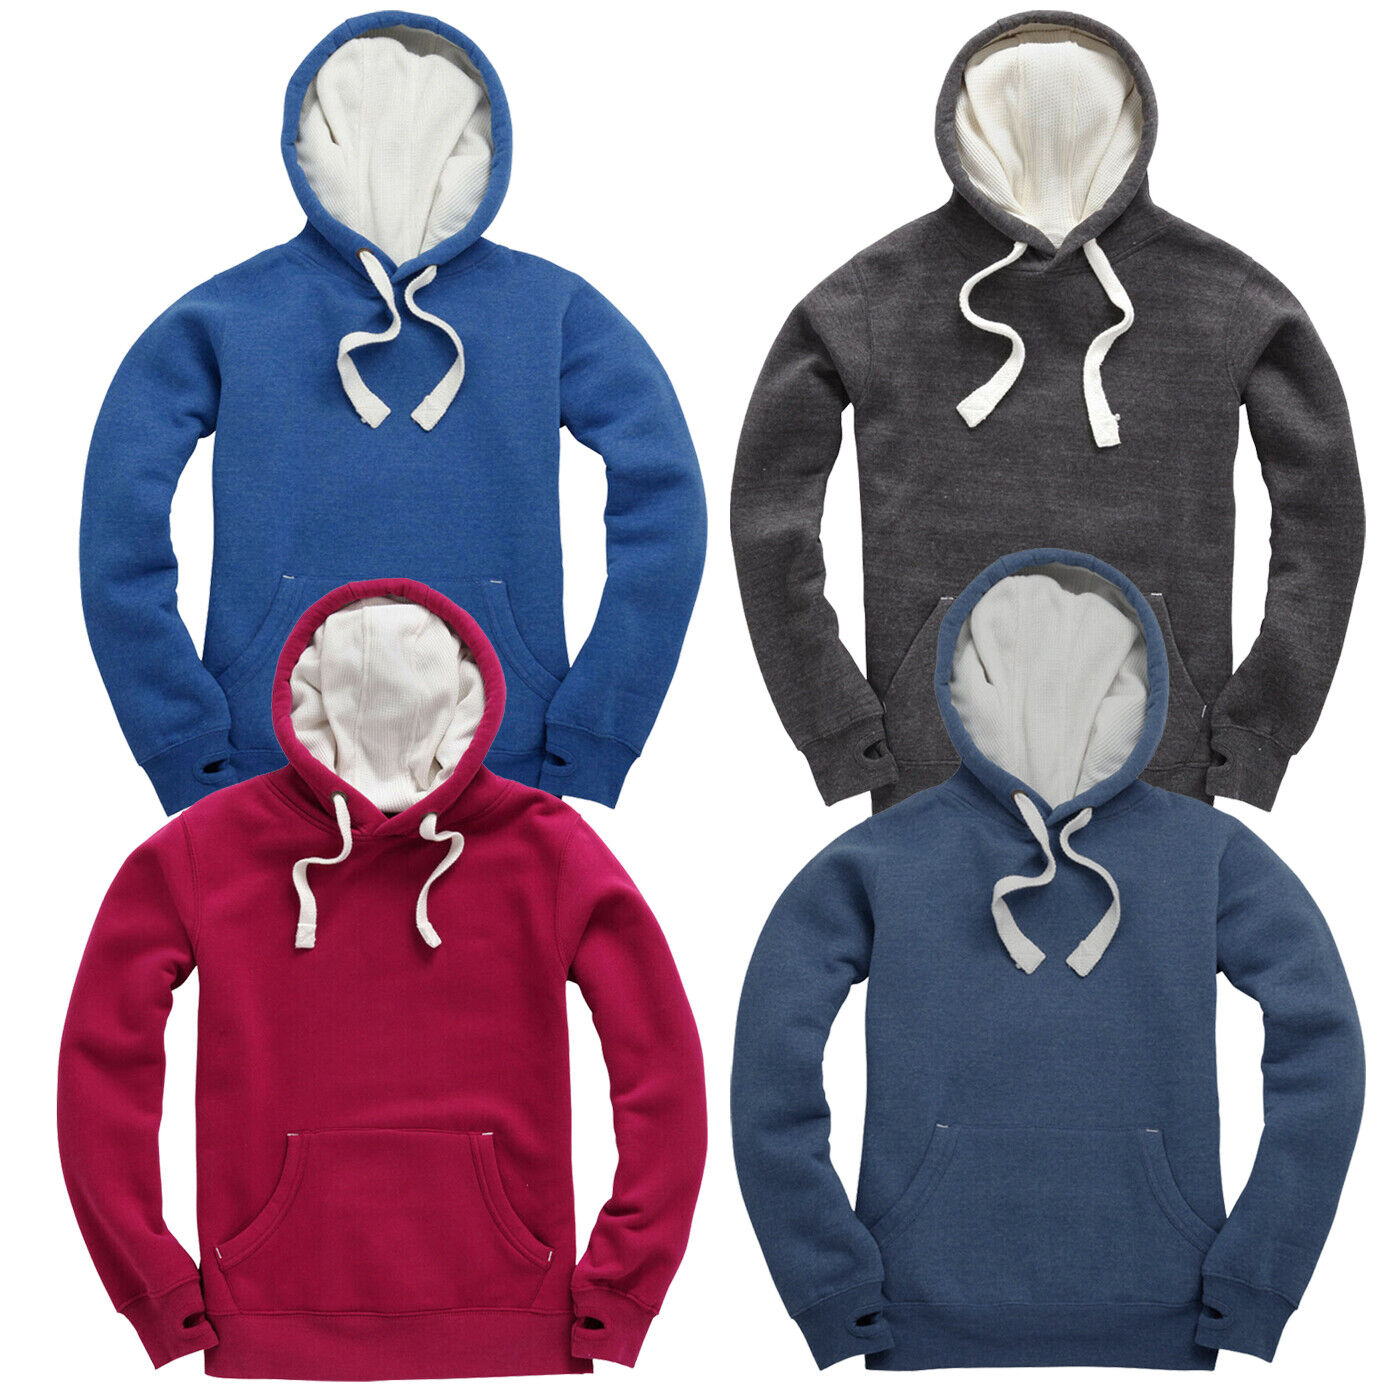 Mens Soft Fleece Hoodie Thumb hole Hooded Top Jumper S to XXL UNISEX